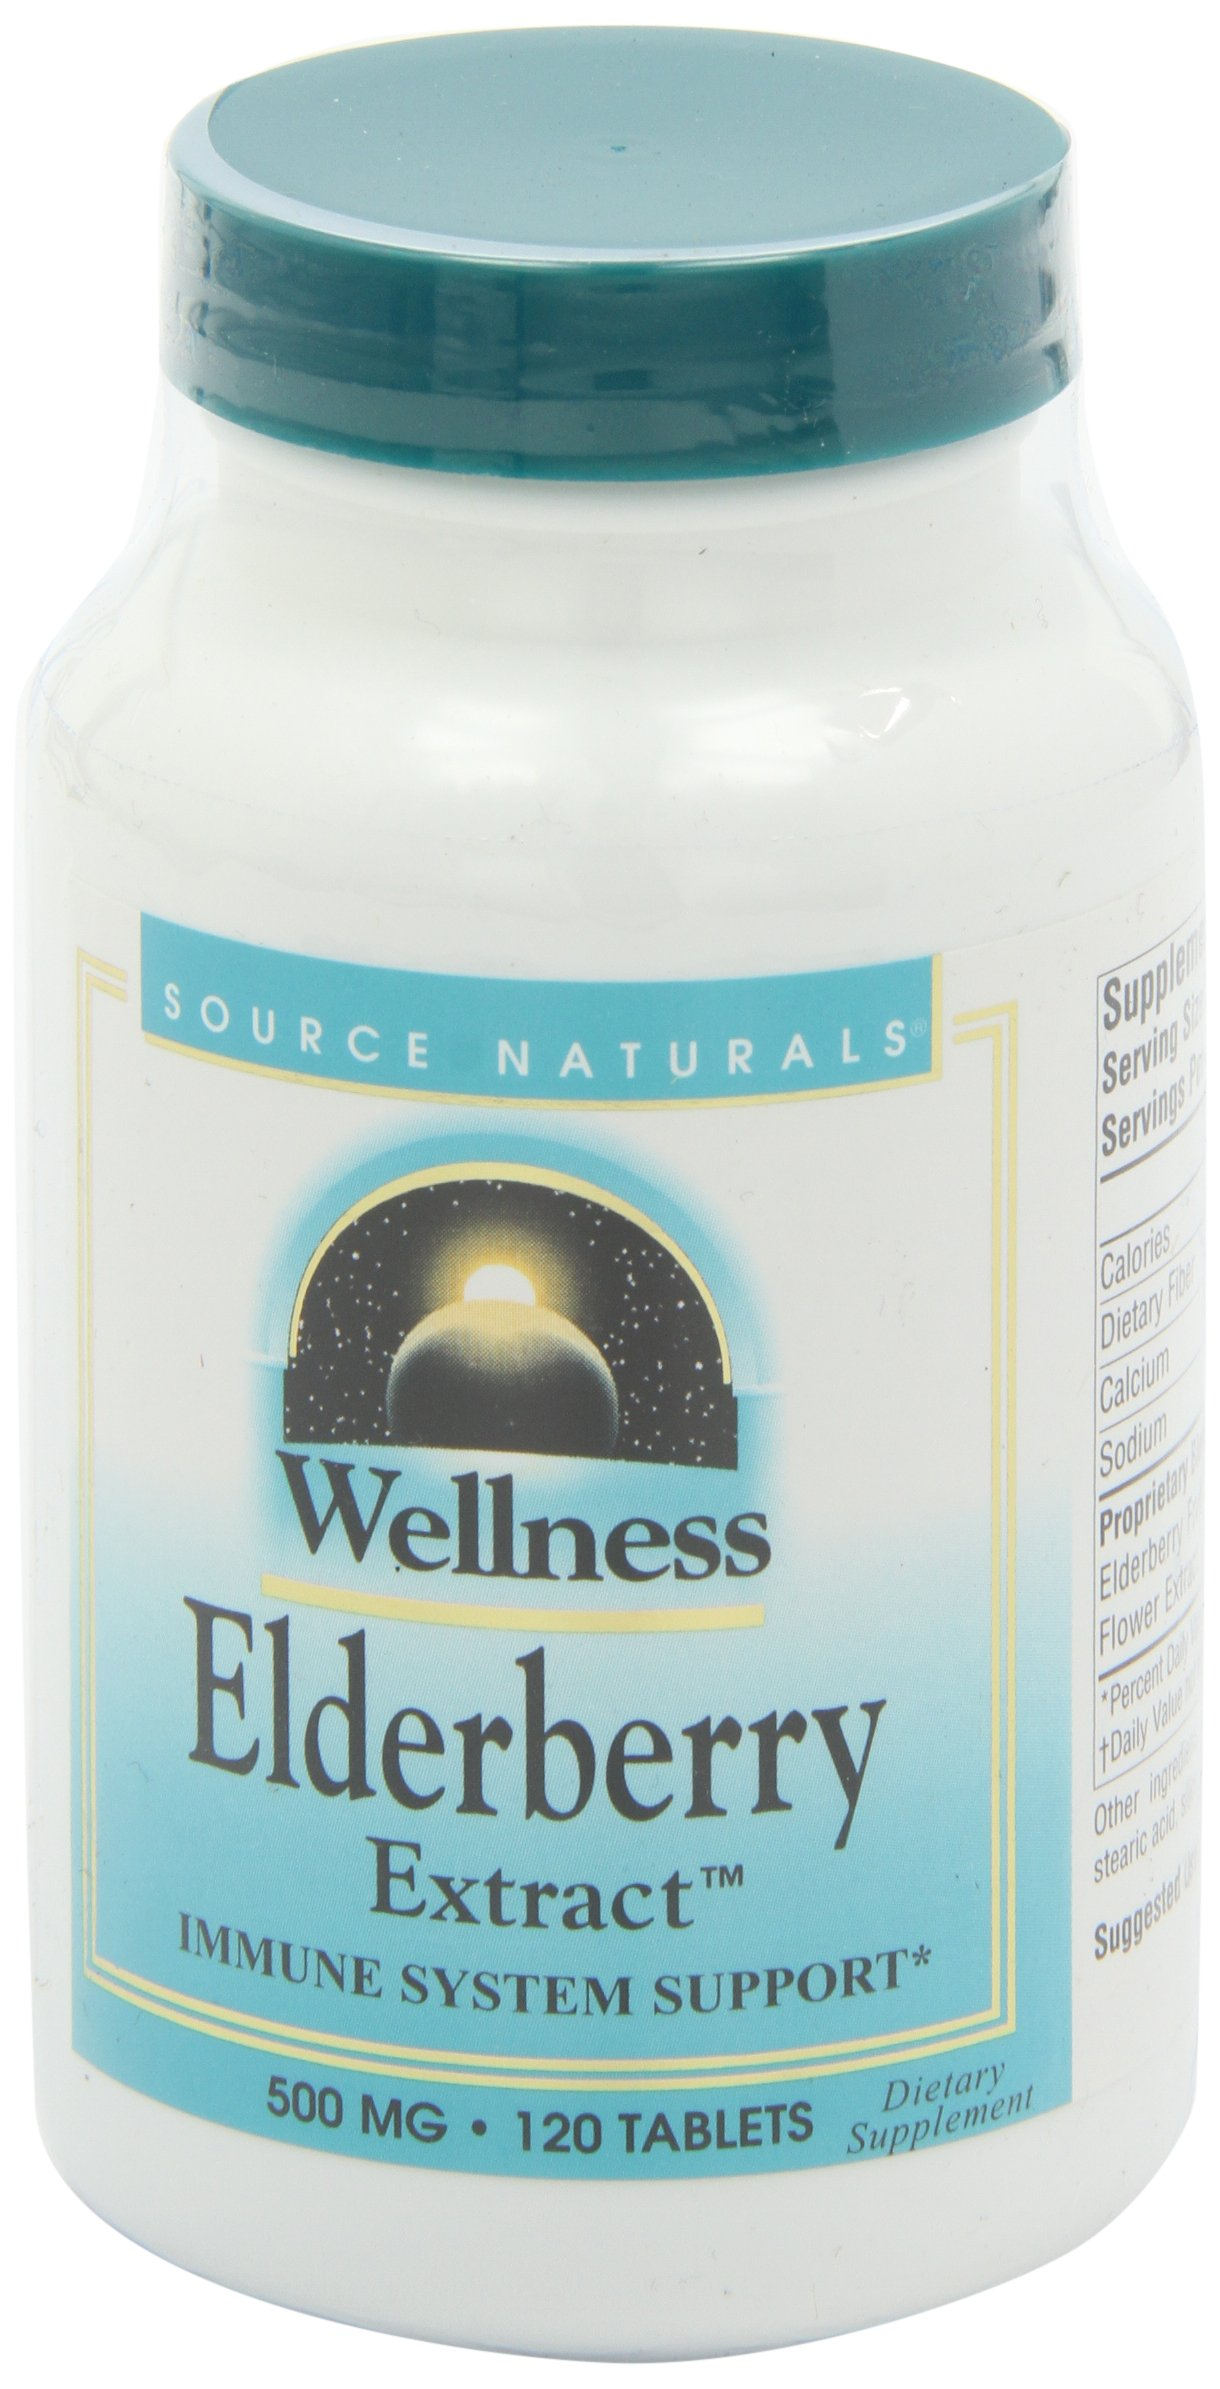 Source Naturals Wellness Elderberry Extract, Immune System Support 120 Tablets